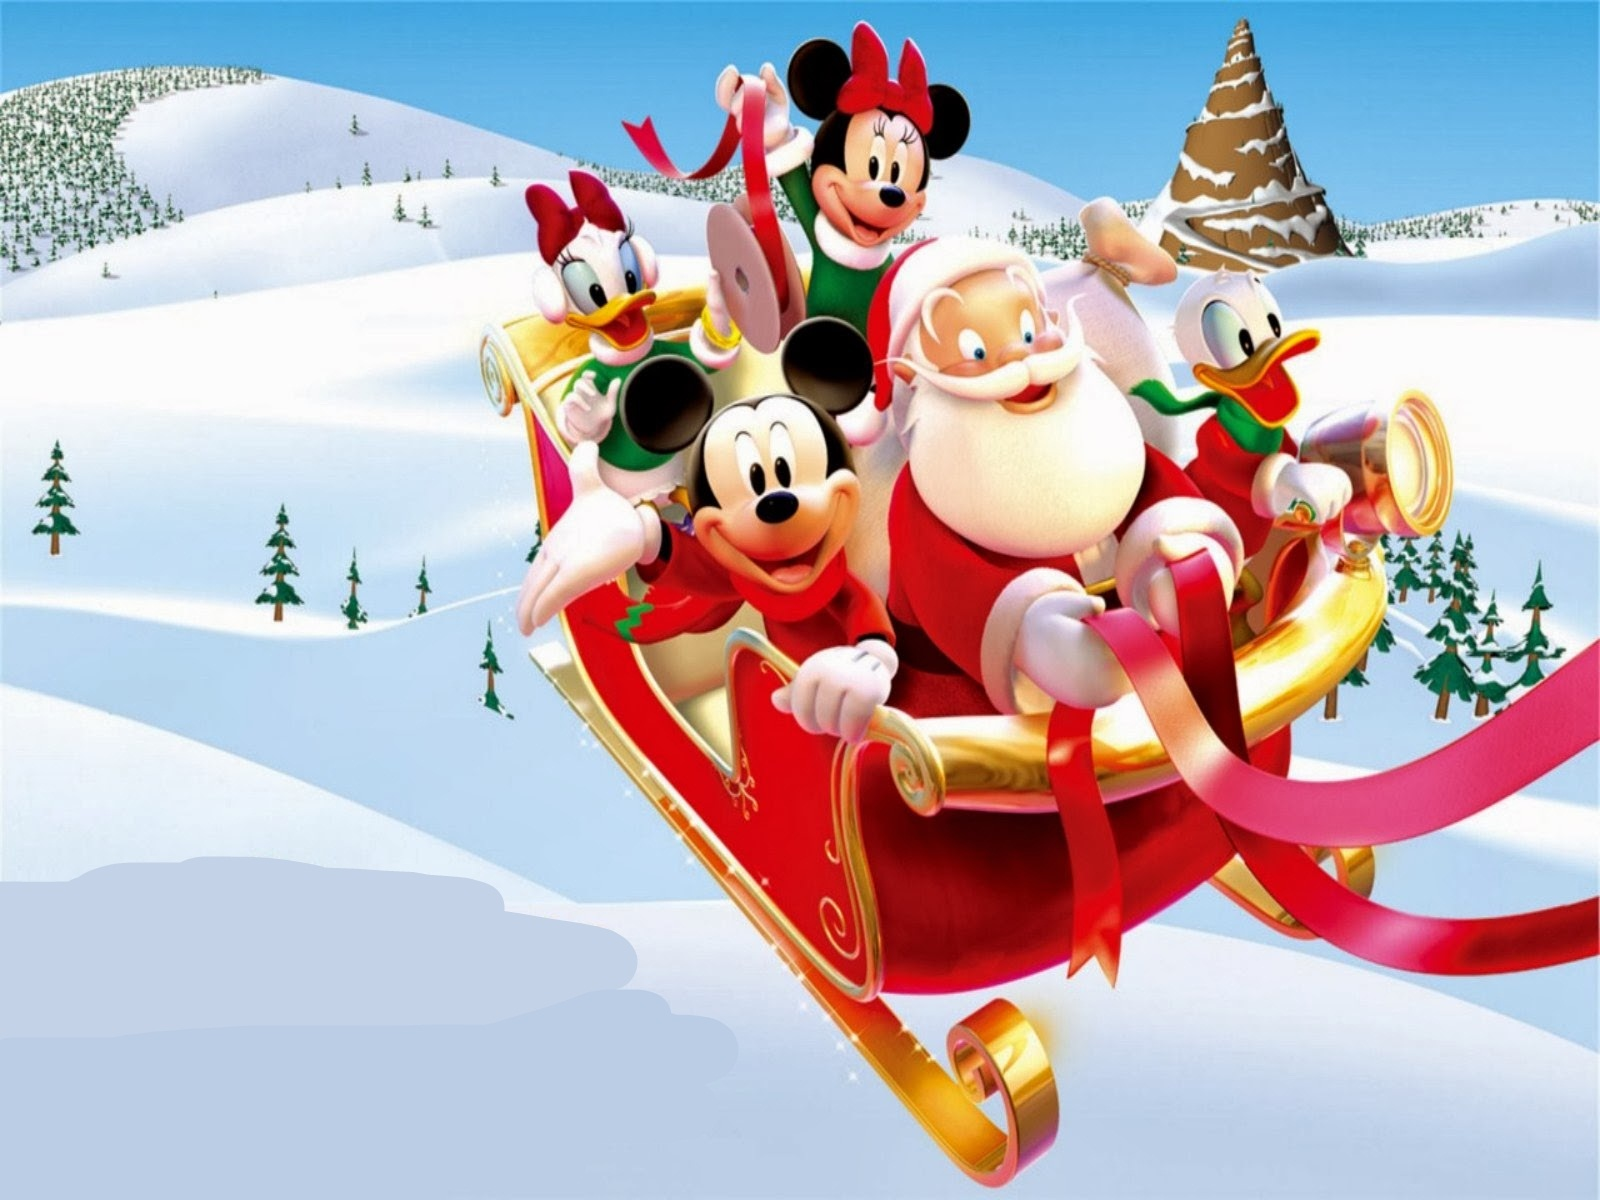 Hd Wallpapers Mickey Mouse Christmas Santa Claus 279281 Desktop